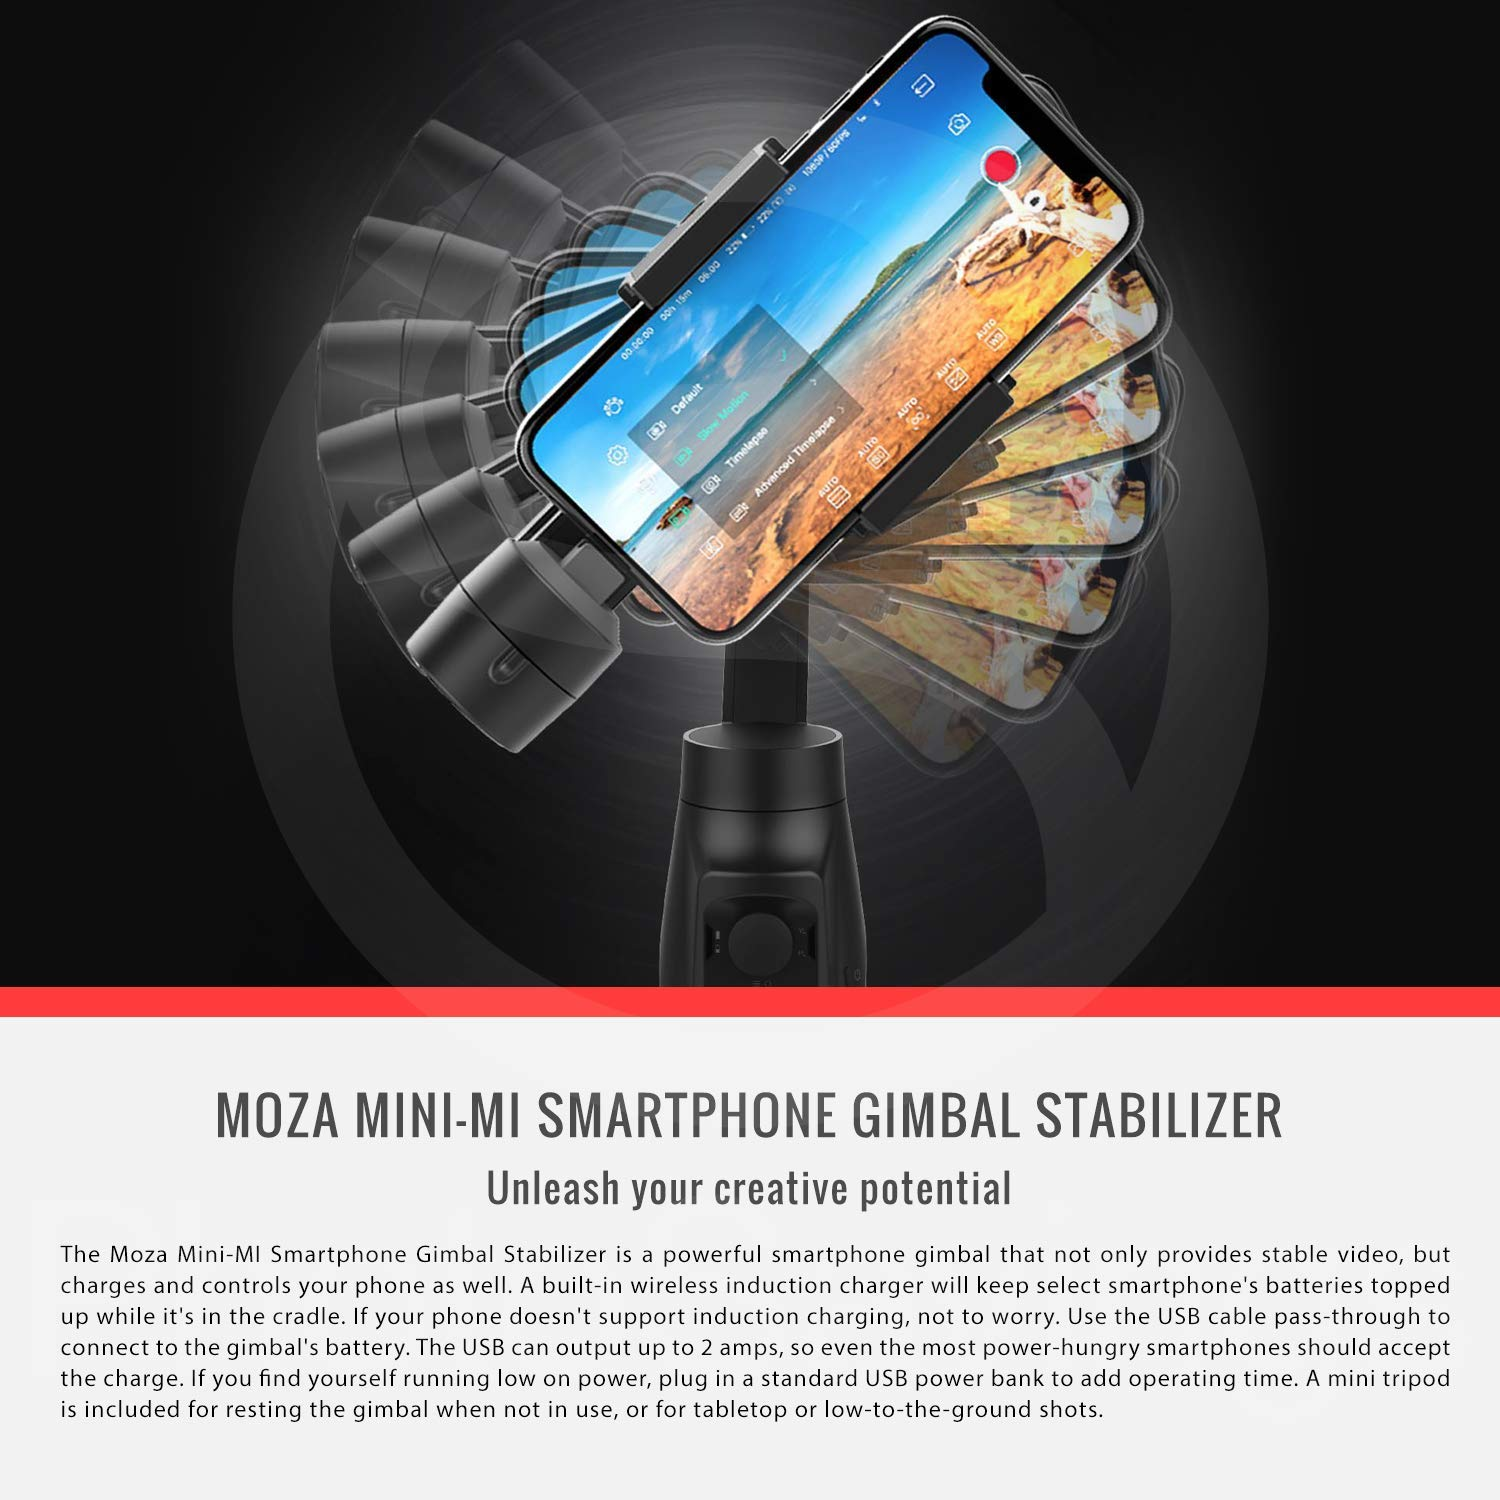 Moza Mini-MI 3-Axis Smartphone Gimbal Stabilizer with Lavalier Microphone Accessory Bundle by MOZA (Image #3)